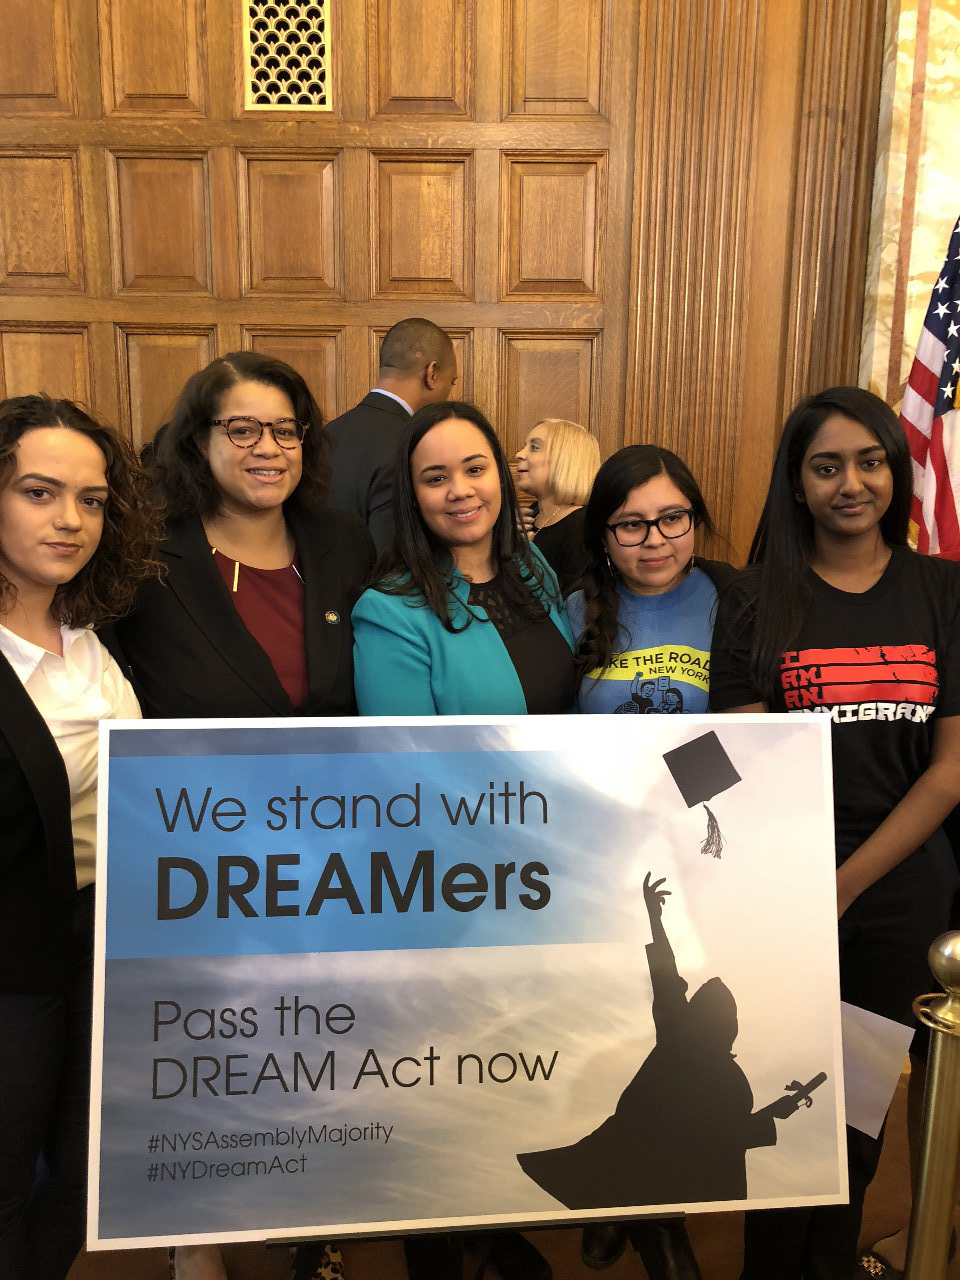 Assemblywoman Solages meets with dreamers in support of the Jose Peralta Dream Act that was signed into law in 2019.